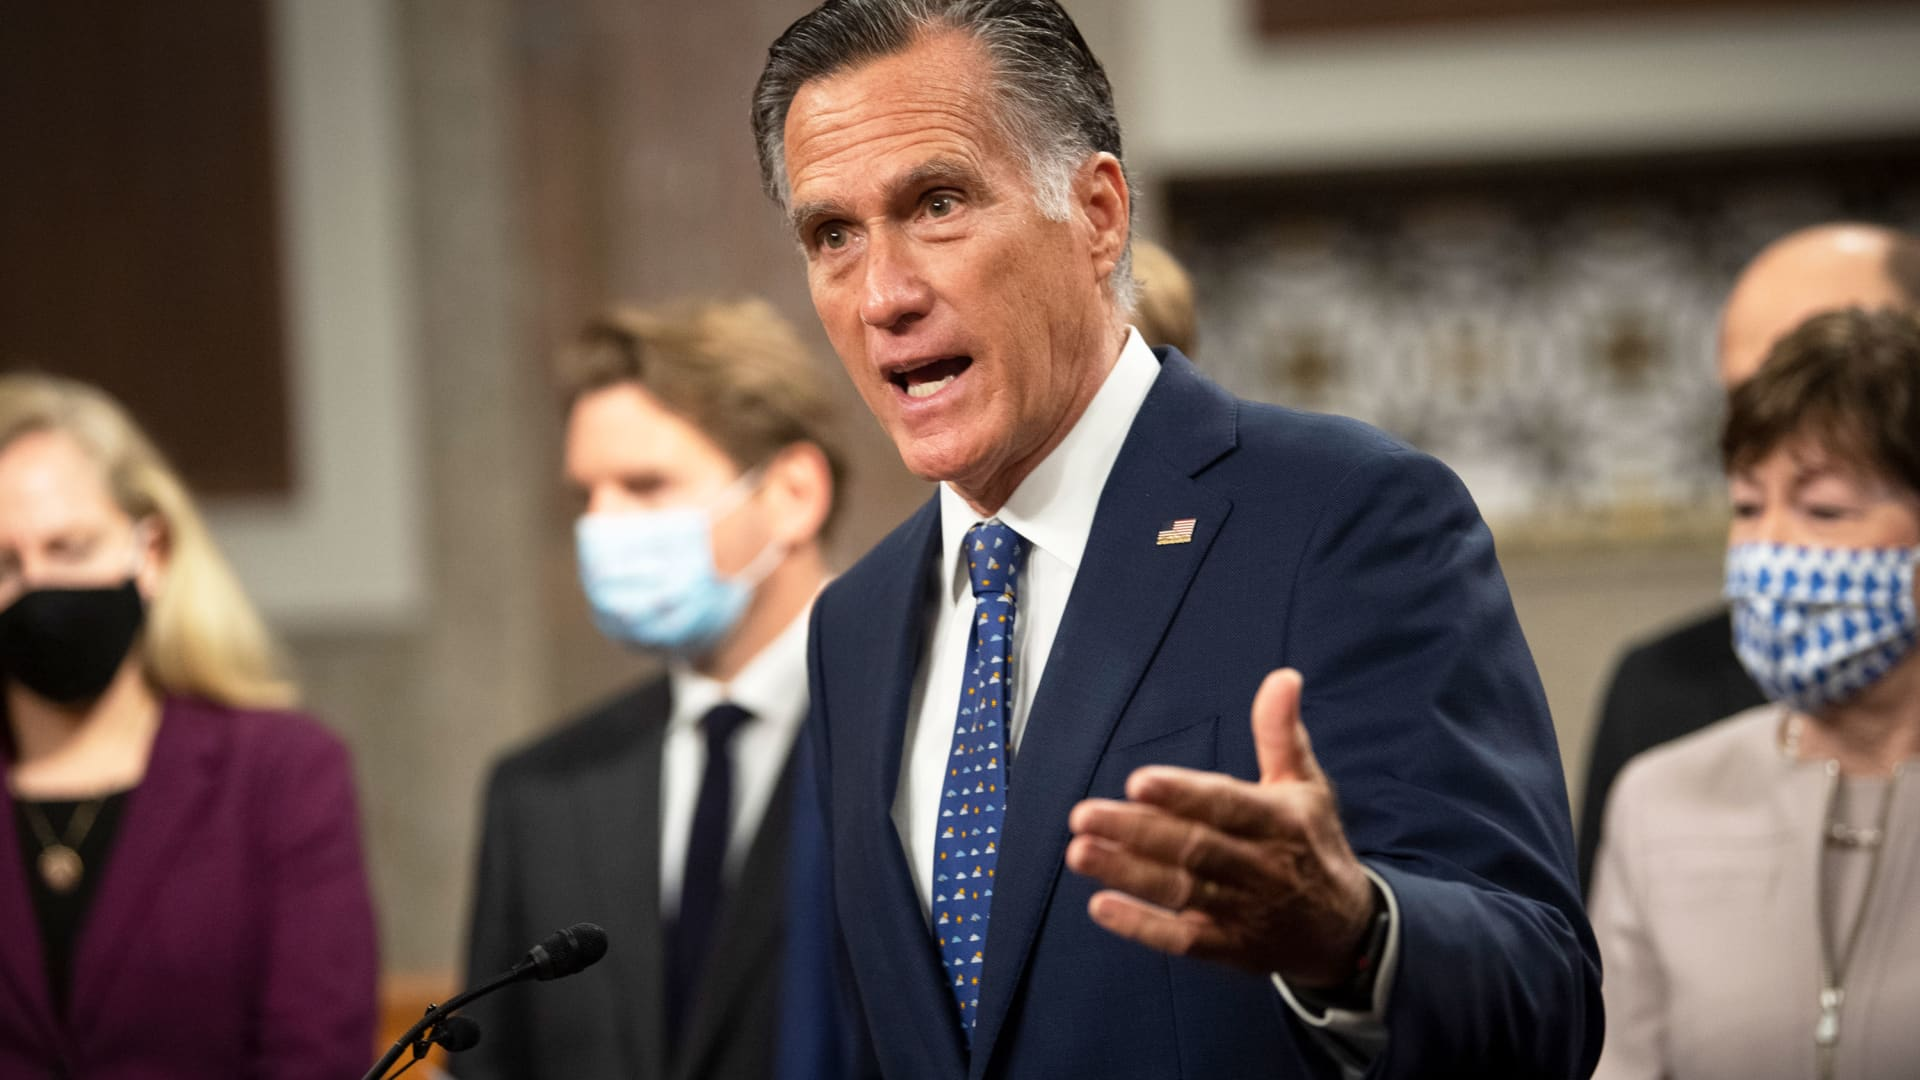 Sen. Mitt Romney, R-Utah, speaks during a news conference with a group of bipartisan lawmakers to unveil a COVID-19 emergency relief framework in the Dirksen Senate Office Building in Washington on Tuesday, Dec. 1, 2020.